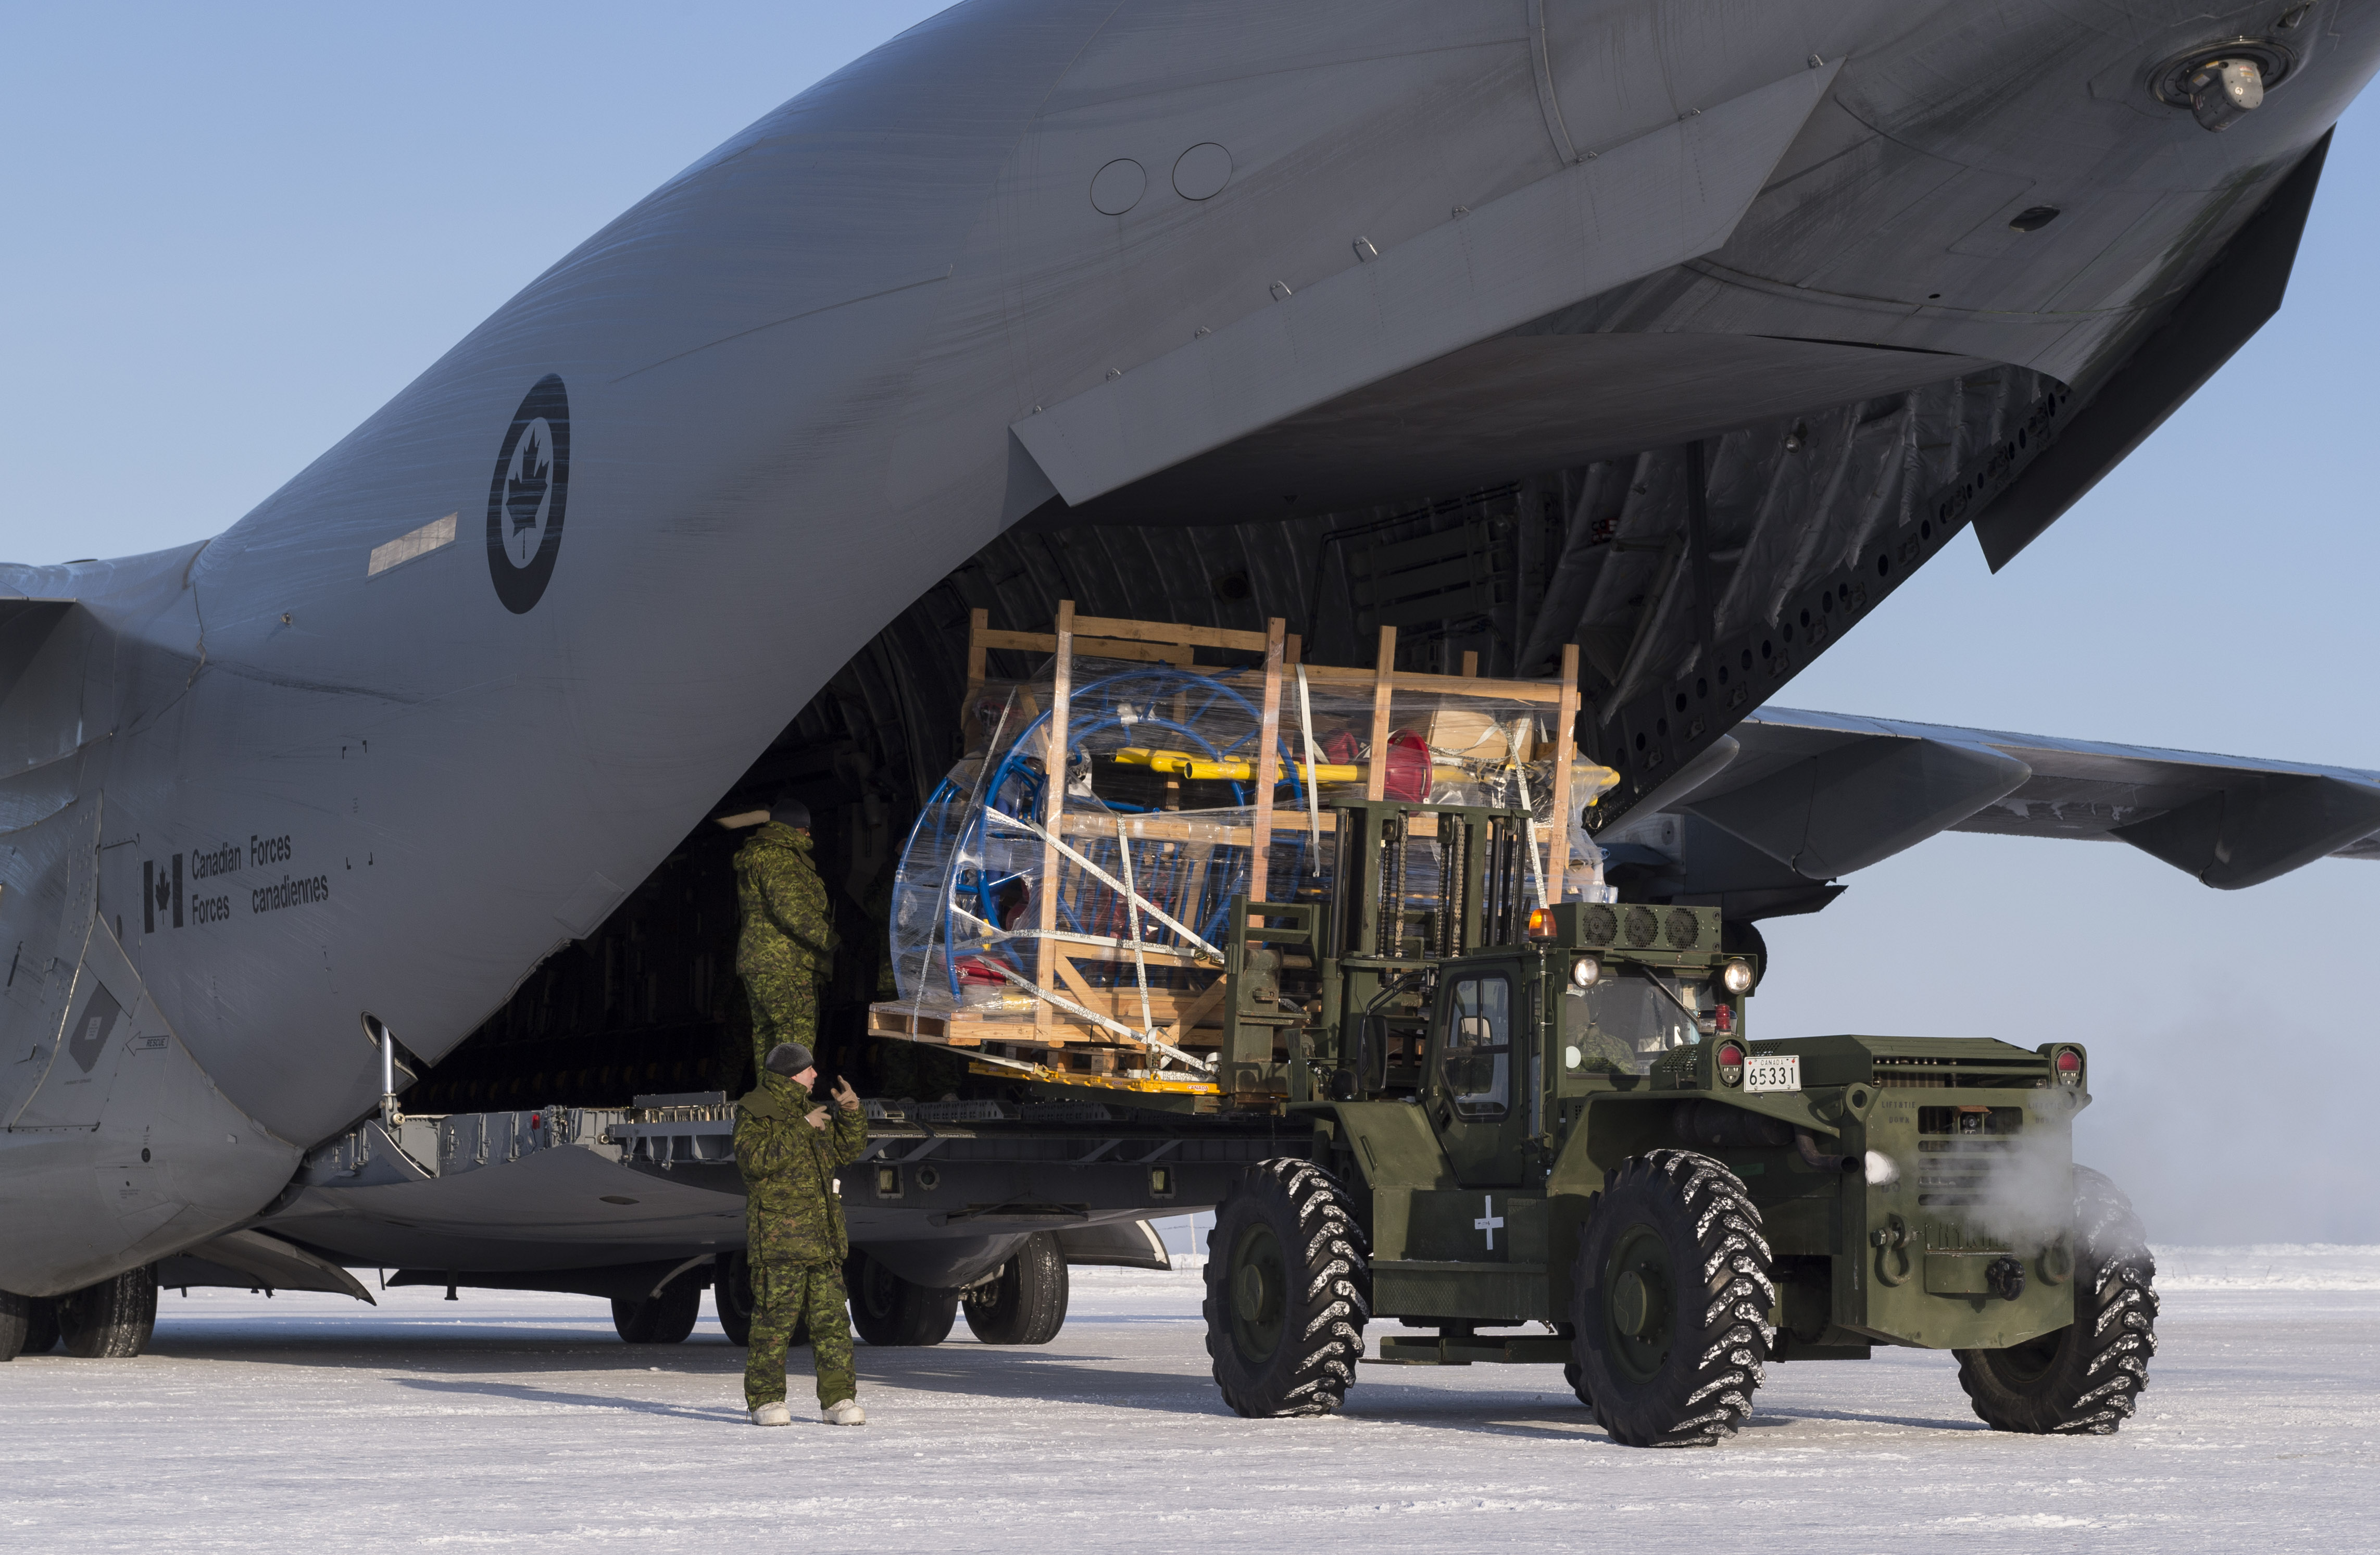 Playground parts for the local community are unloaded from a CC-177 Globemaster aircraft in Hall Beach, Nunavut, on March 3, 2017, during Operation Nunalivut. PHOTO: Sergeant Jean-François Lauzé, PA01-2017-0054-094